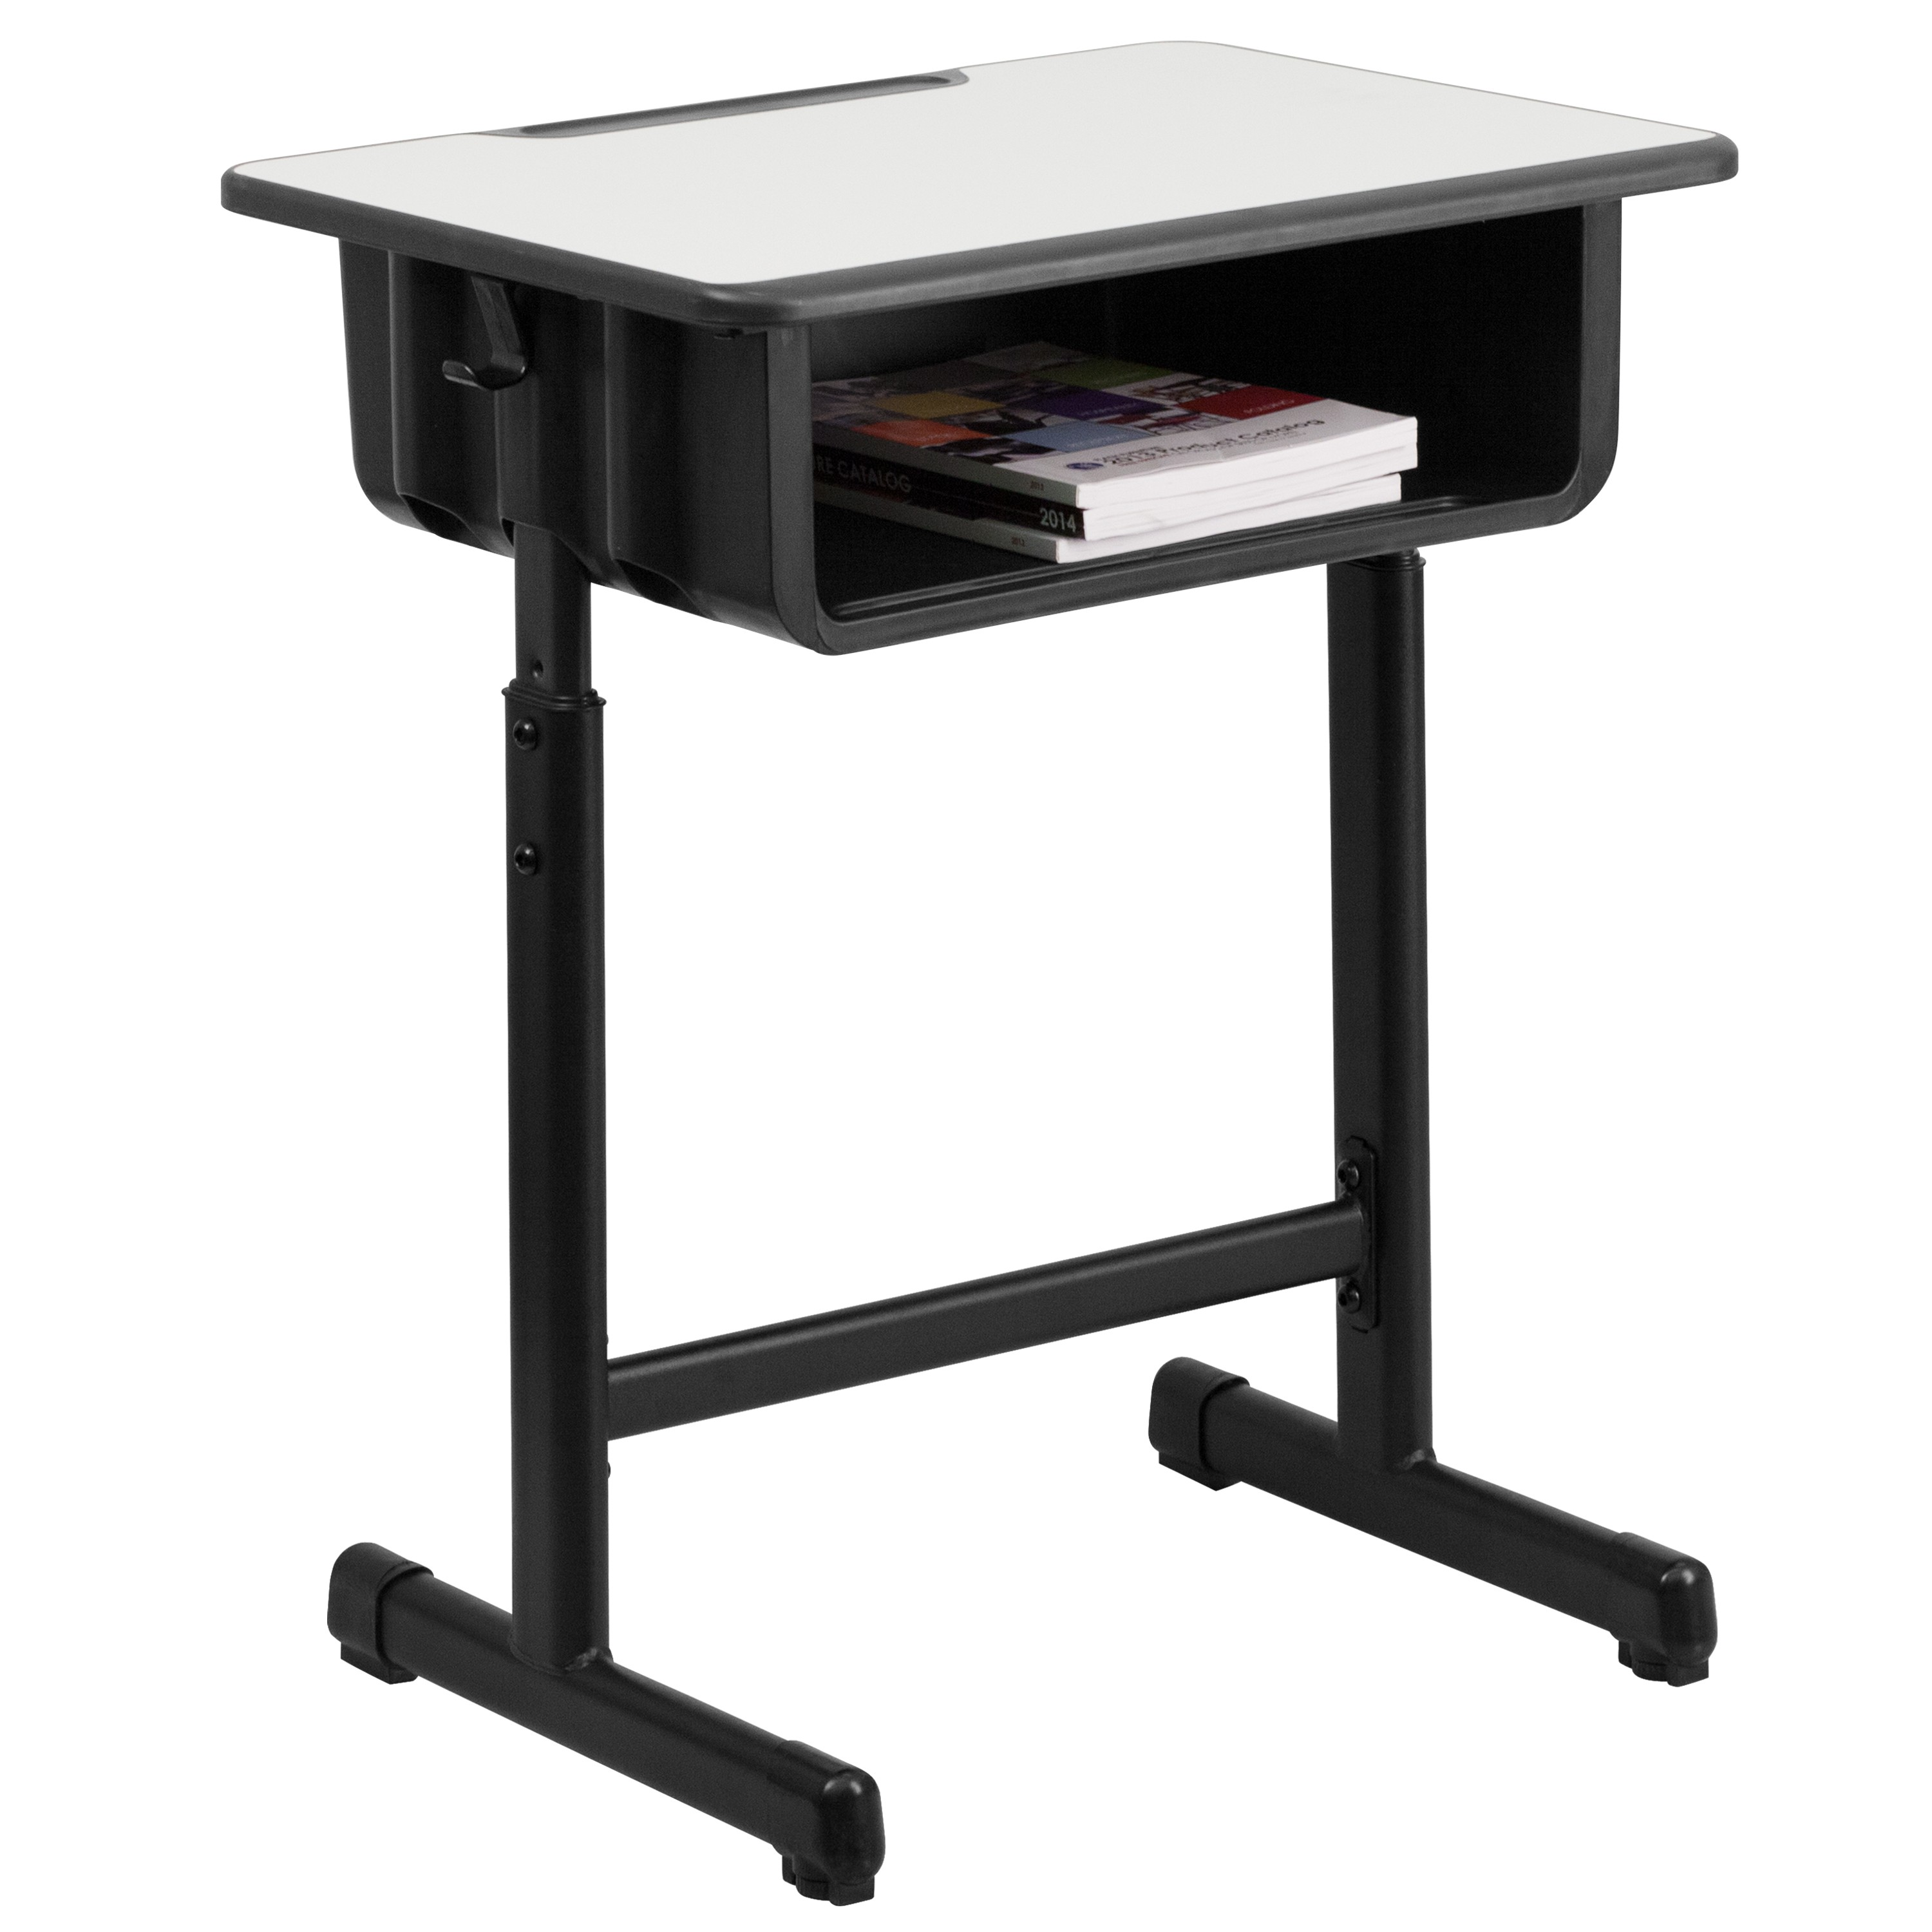 Mfo Student Desk With Grey Top And Adjule Height Black Pedestal Frame